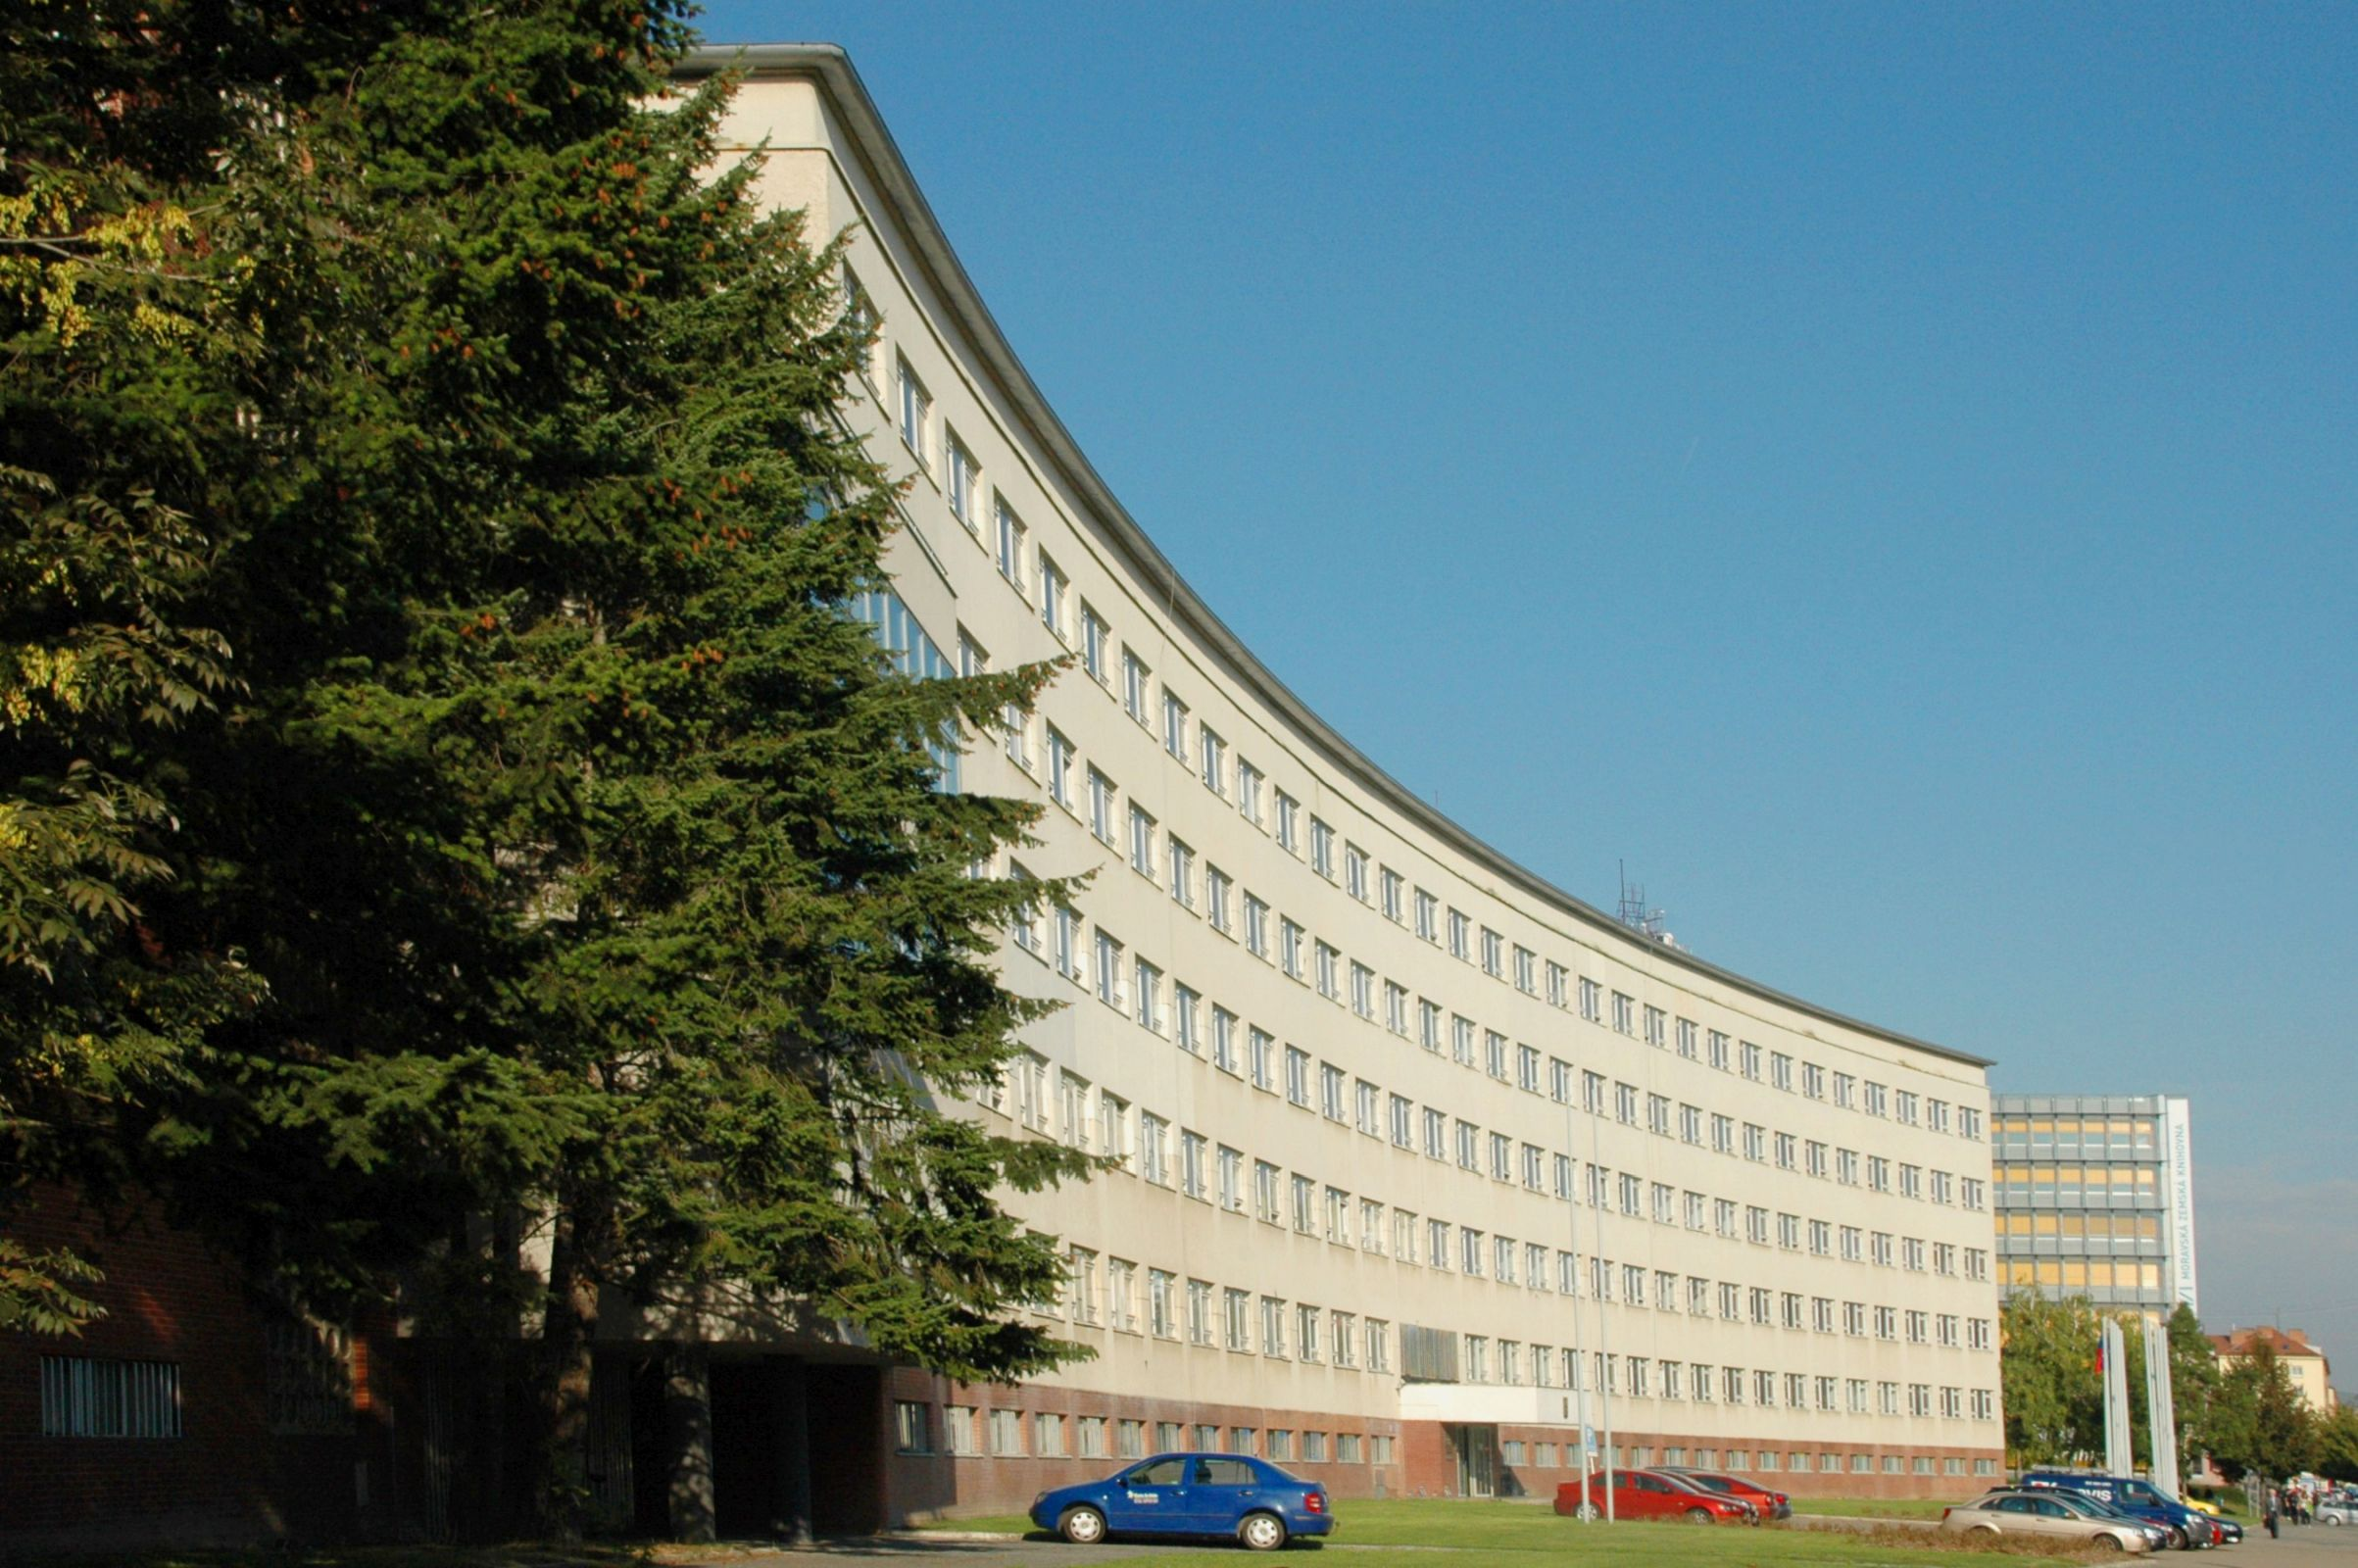 Military Academy (University of Defence) in Brno